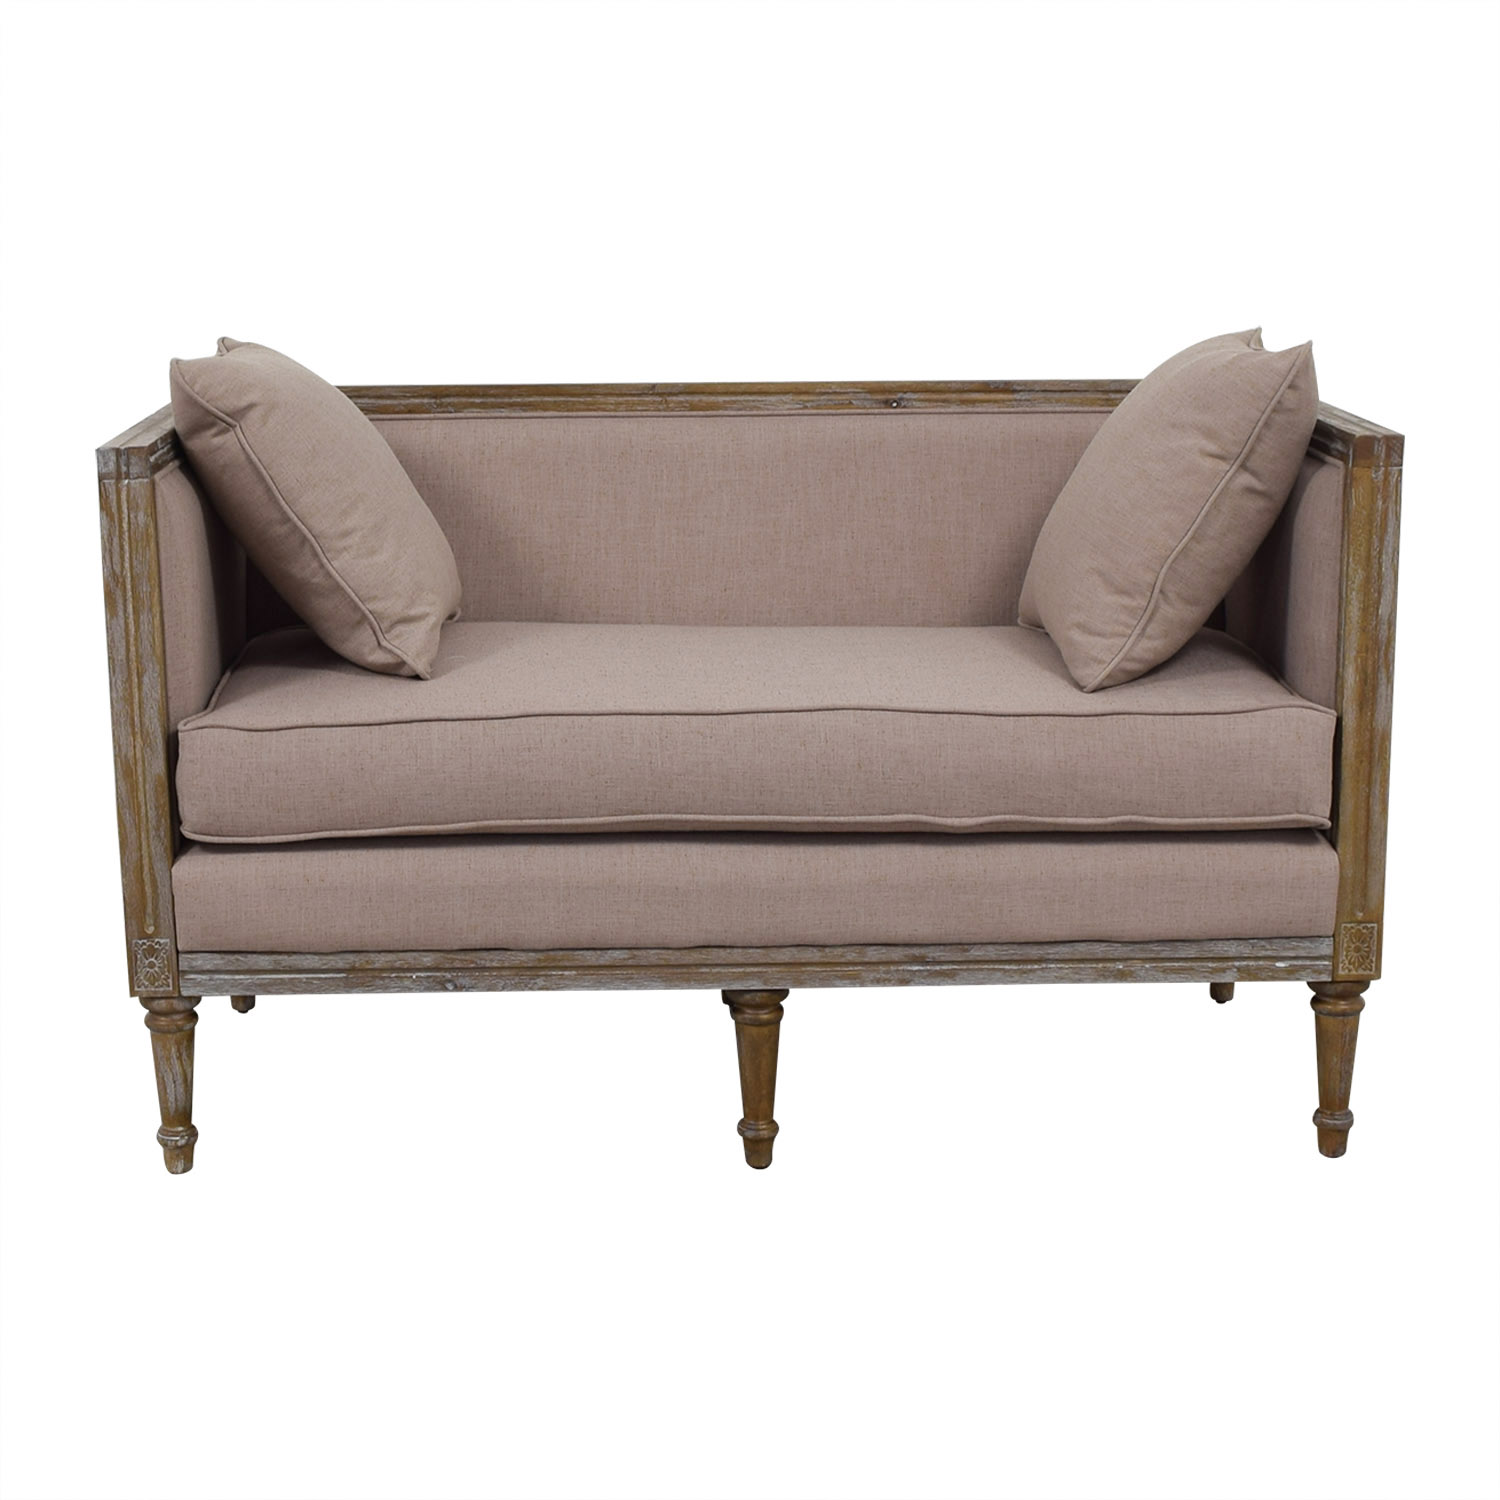 Safavieh Safavieh Leandra French Country Settee coupon